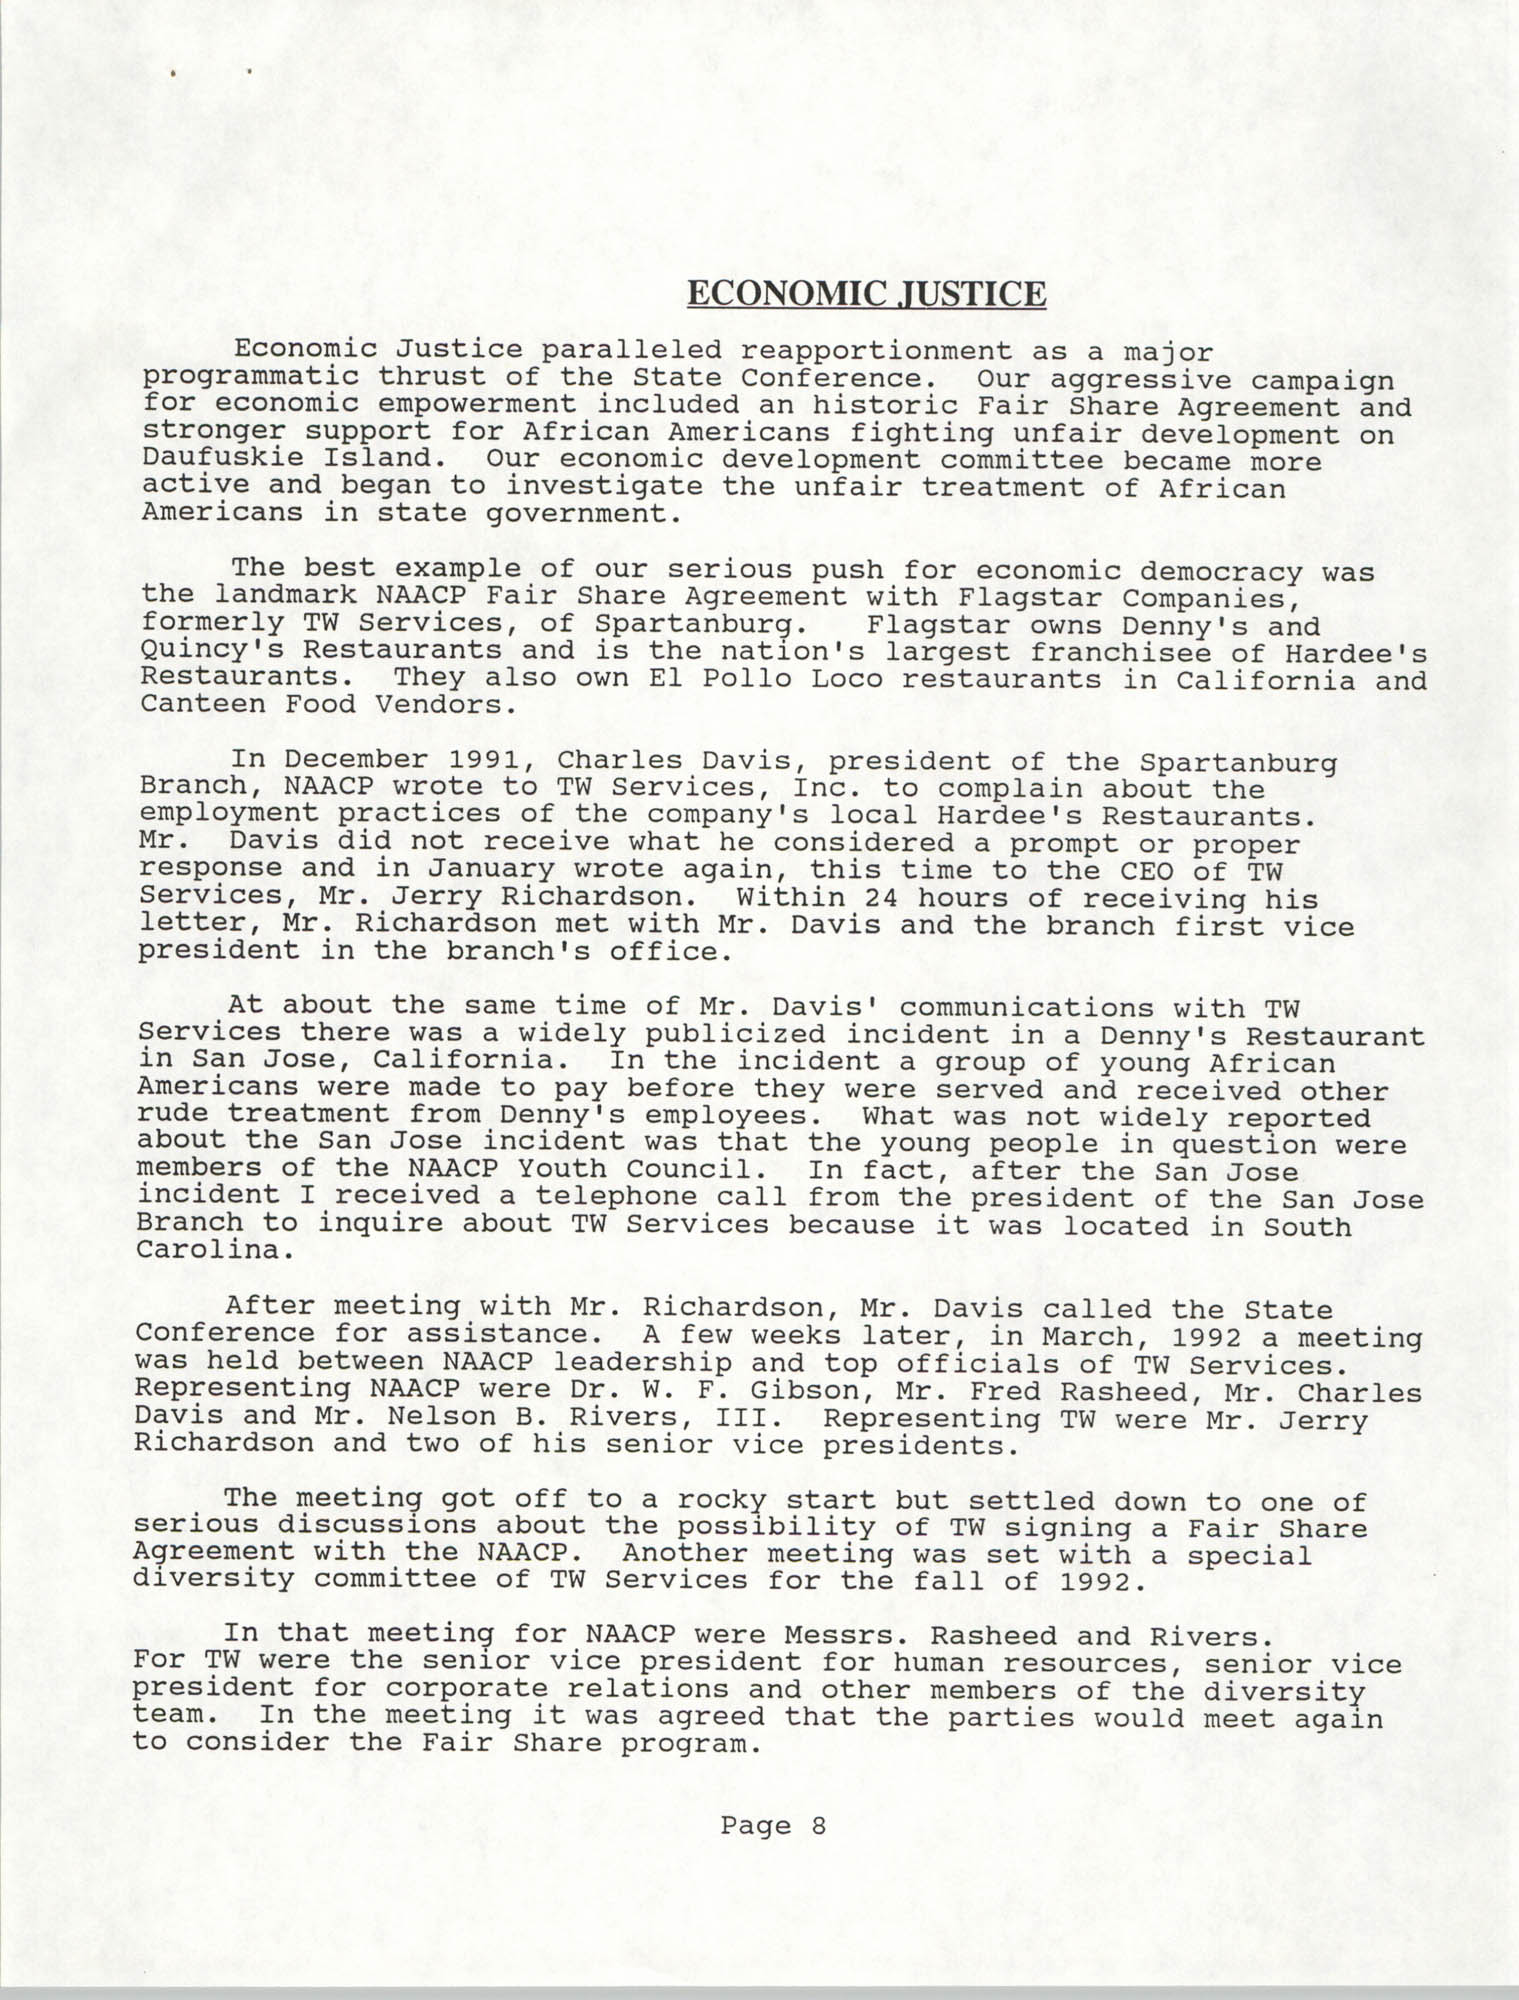 South Carolina Conference of Branches of the NAACP, Annual Report, October 9, 1993, Page 8